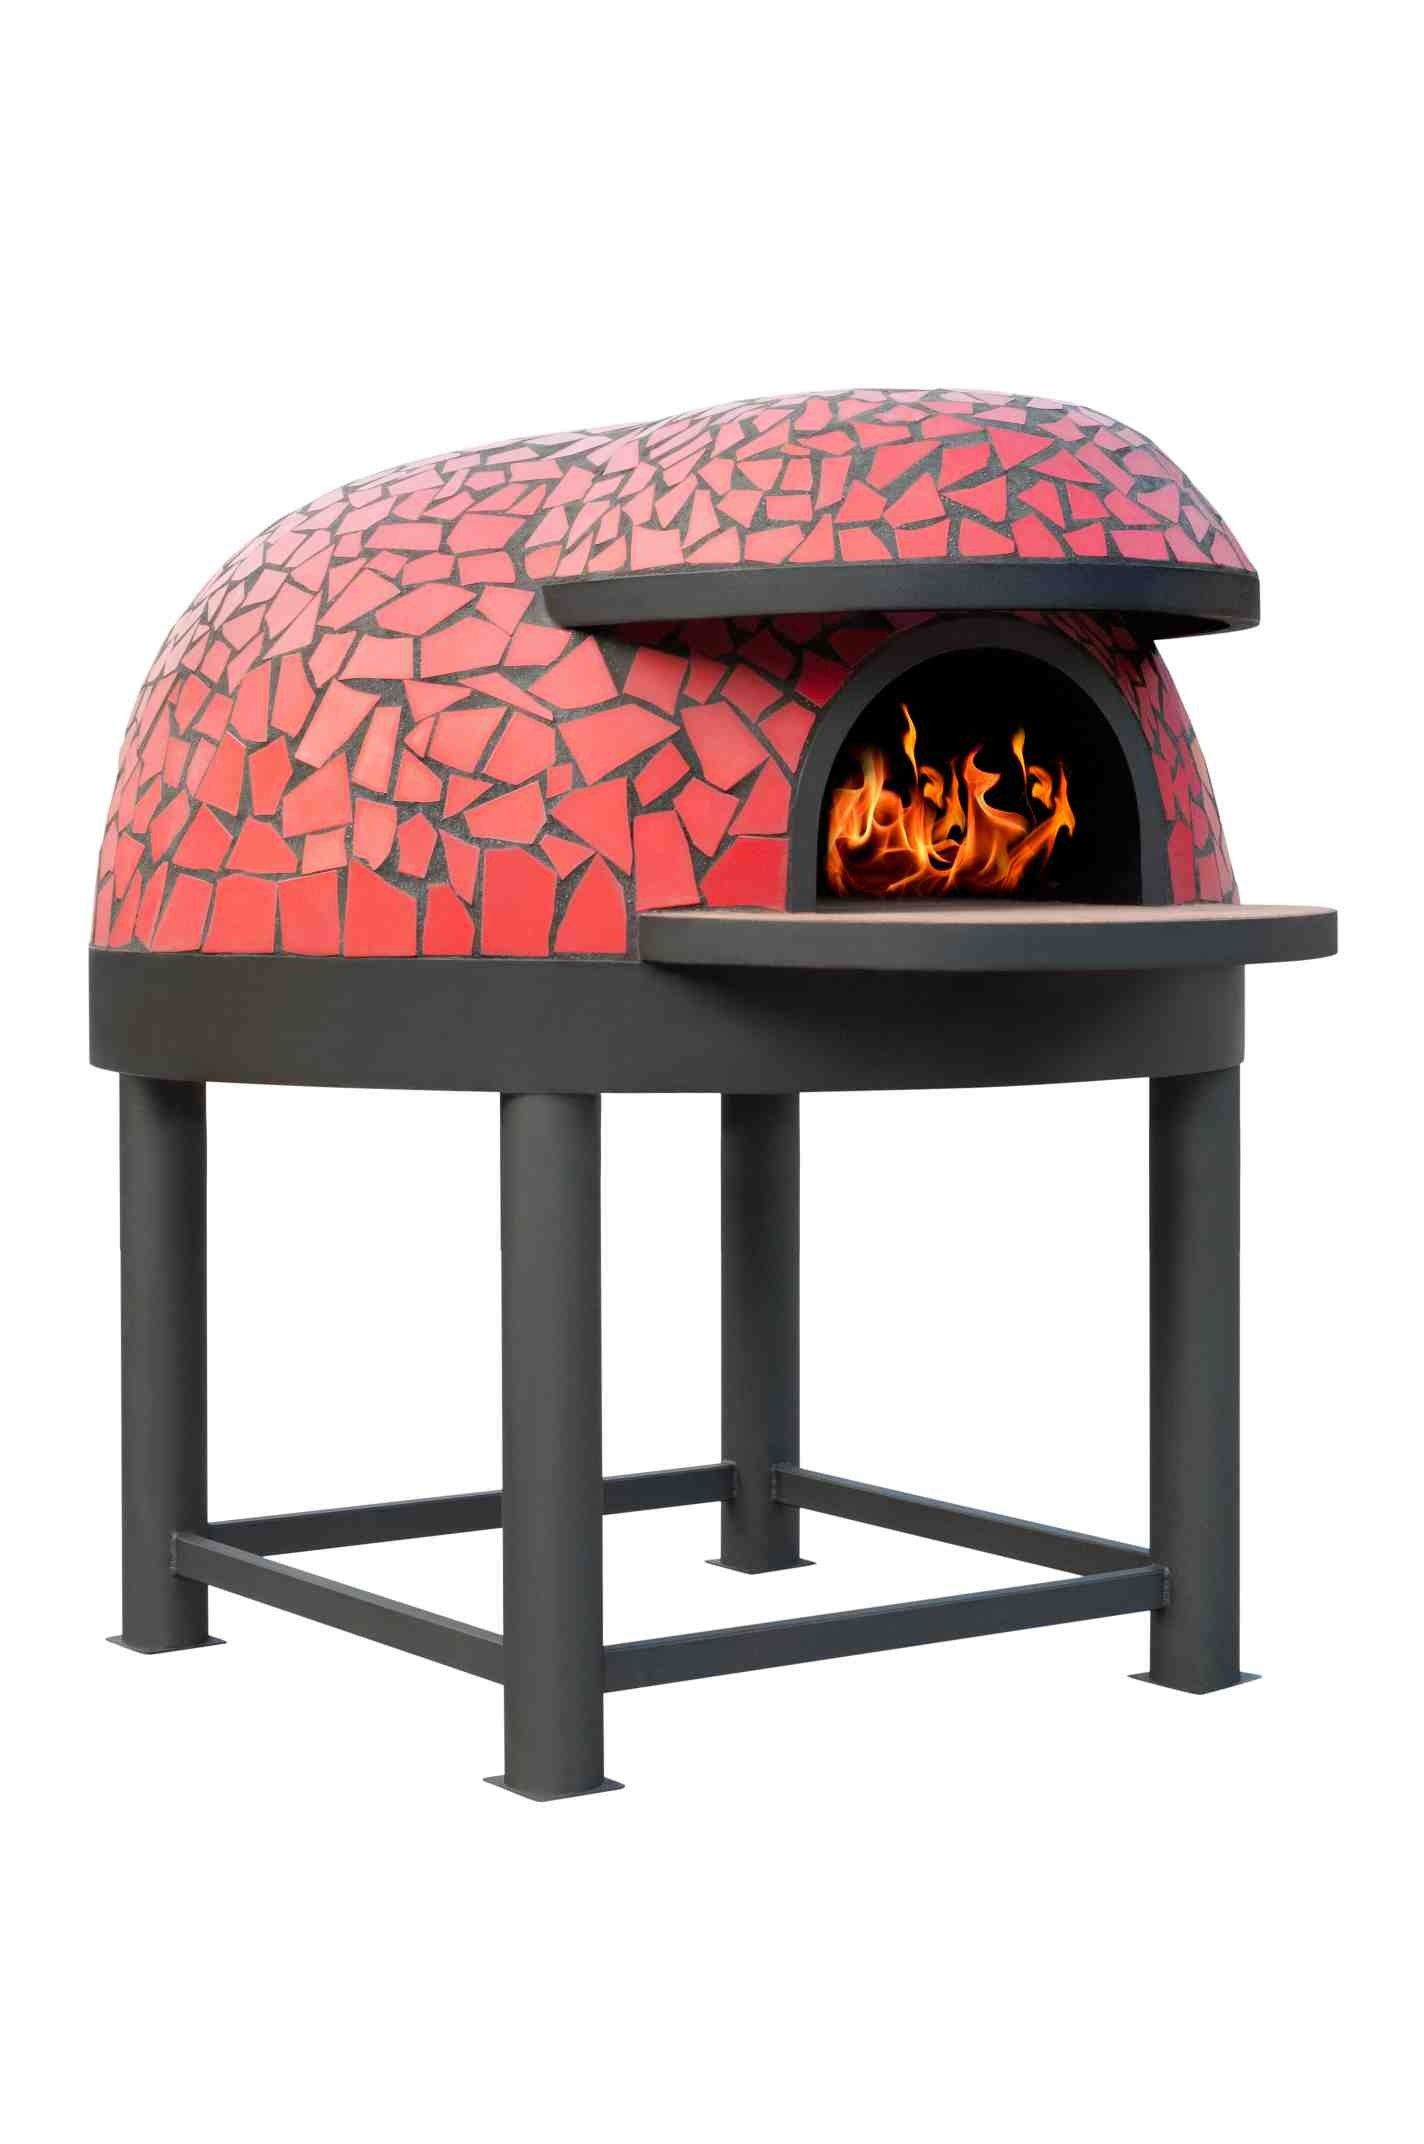 Commercial Pizza Oven Pizza Oven Wood Fired Pizza Oven Commercial Pizza Oven